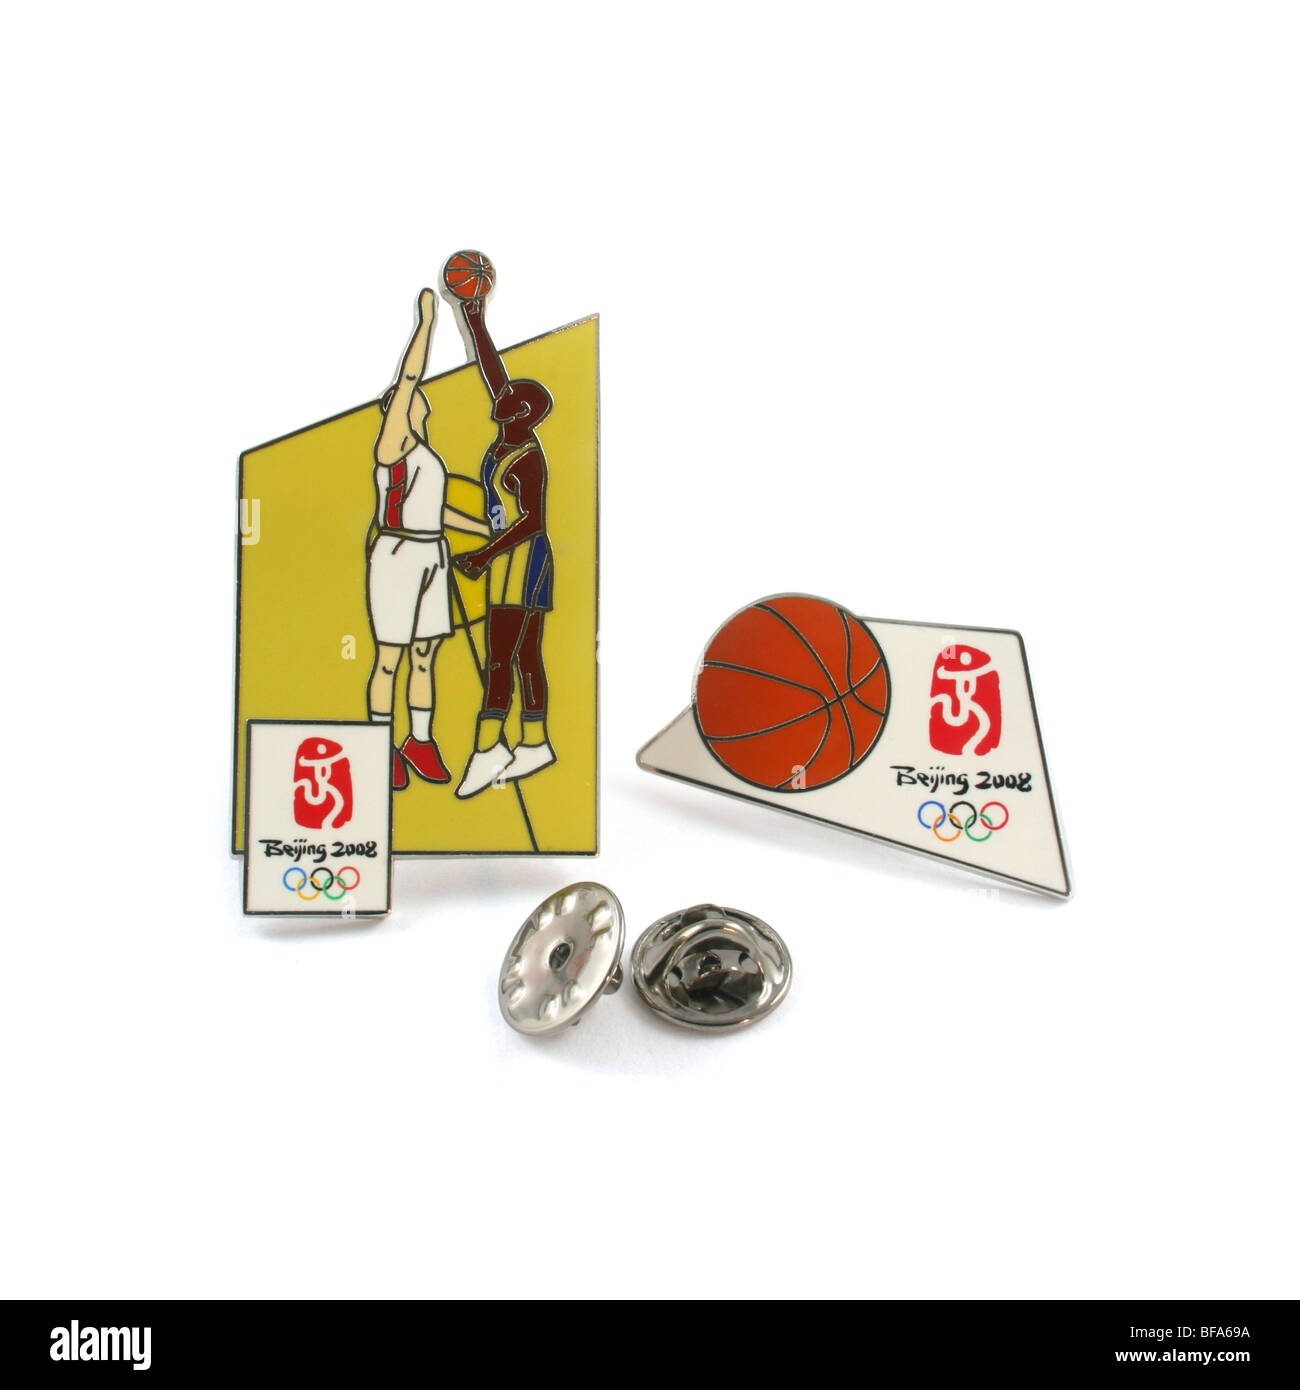 2008 Beijing Olympic Games souvenir pins for basketball. - Stock Image